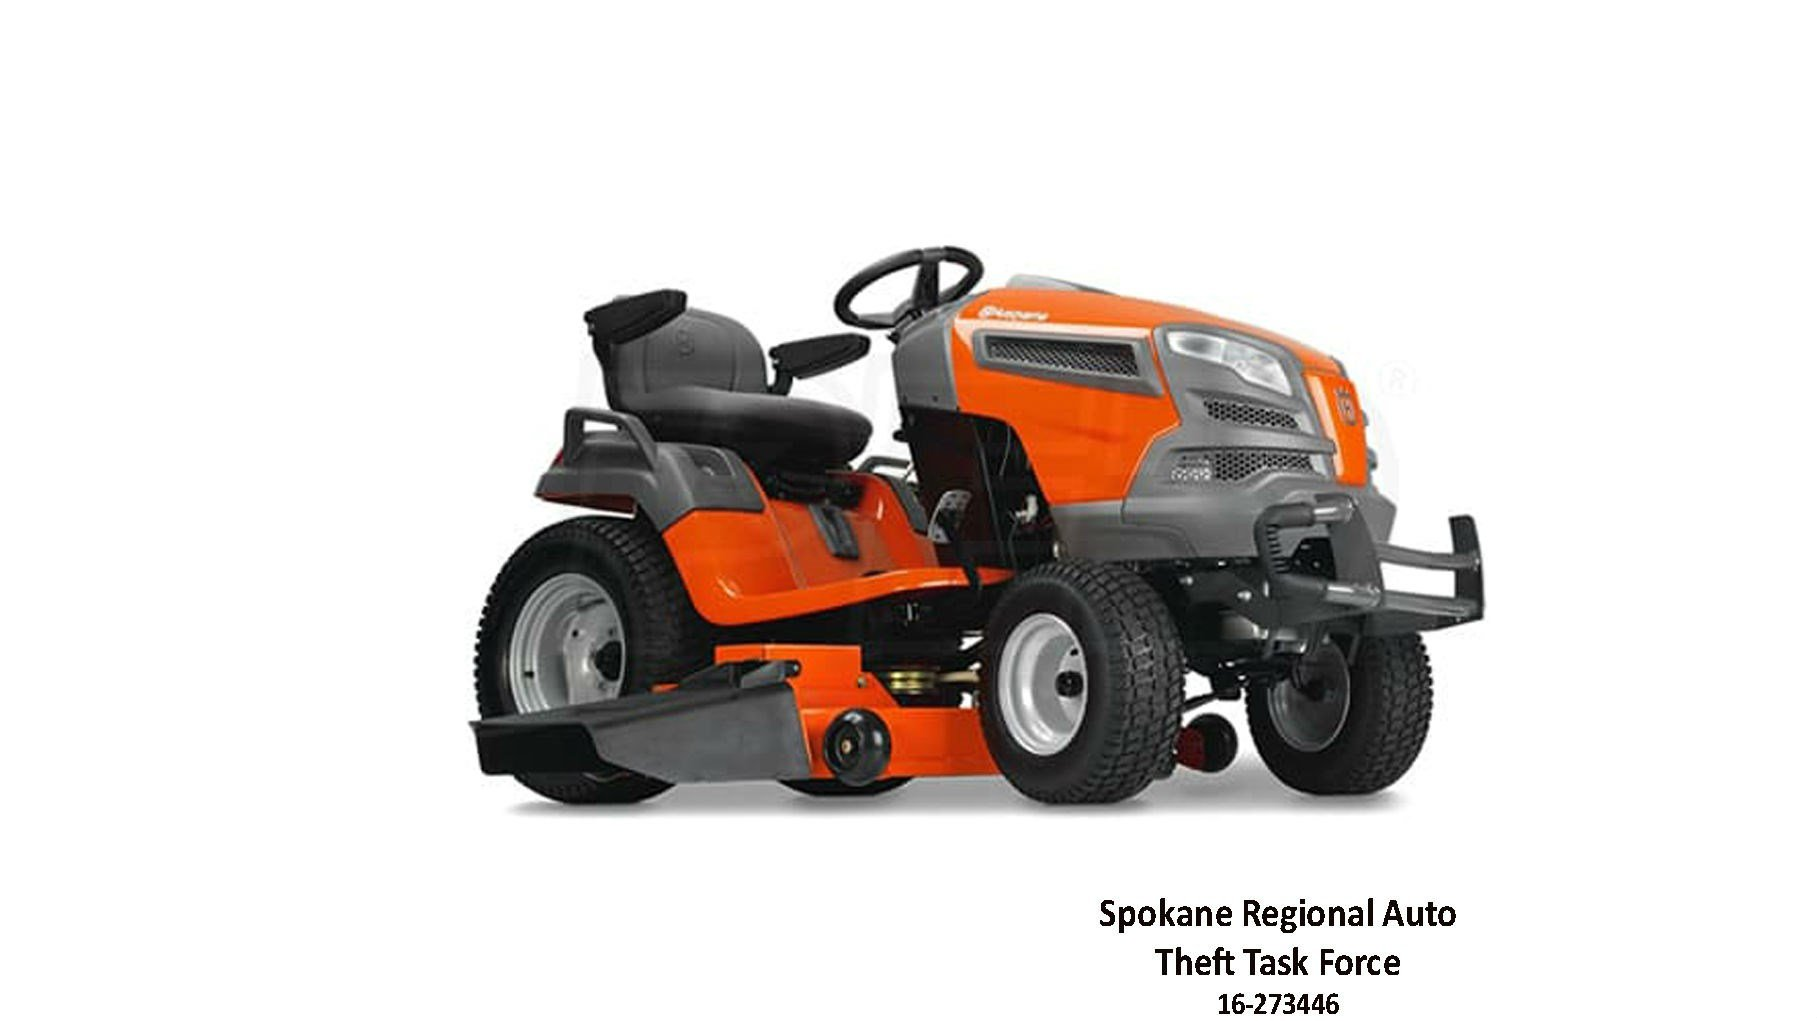 Investigators are attempting to locate the person(s) who may have purchased a Husqvarna similar to the one depicted in this picture.